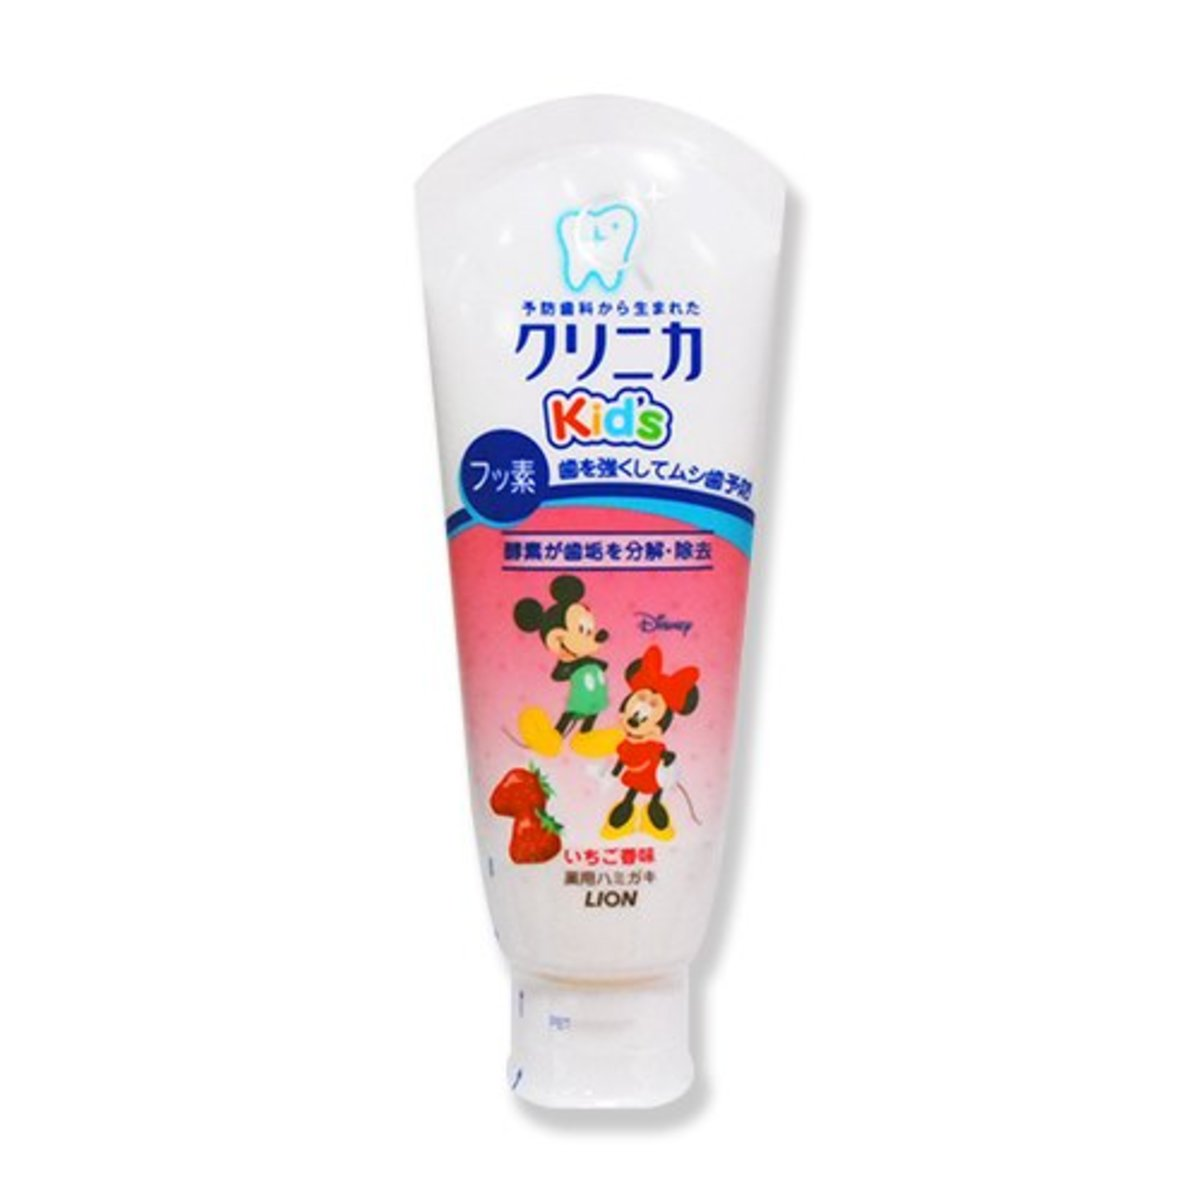 Lion Clinica Kid's toothpaste fresh strawberries 60g